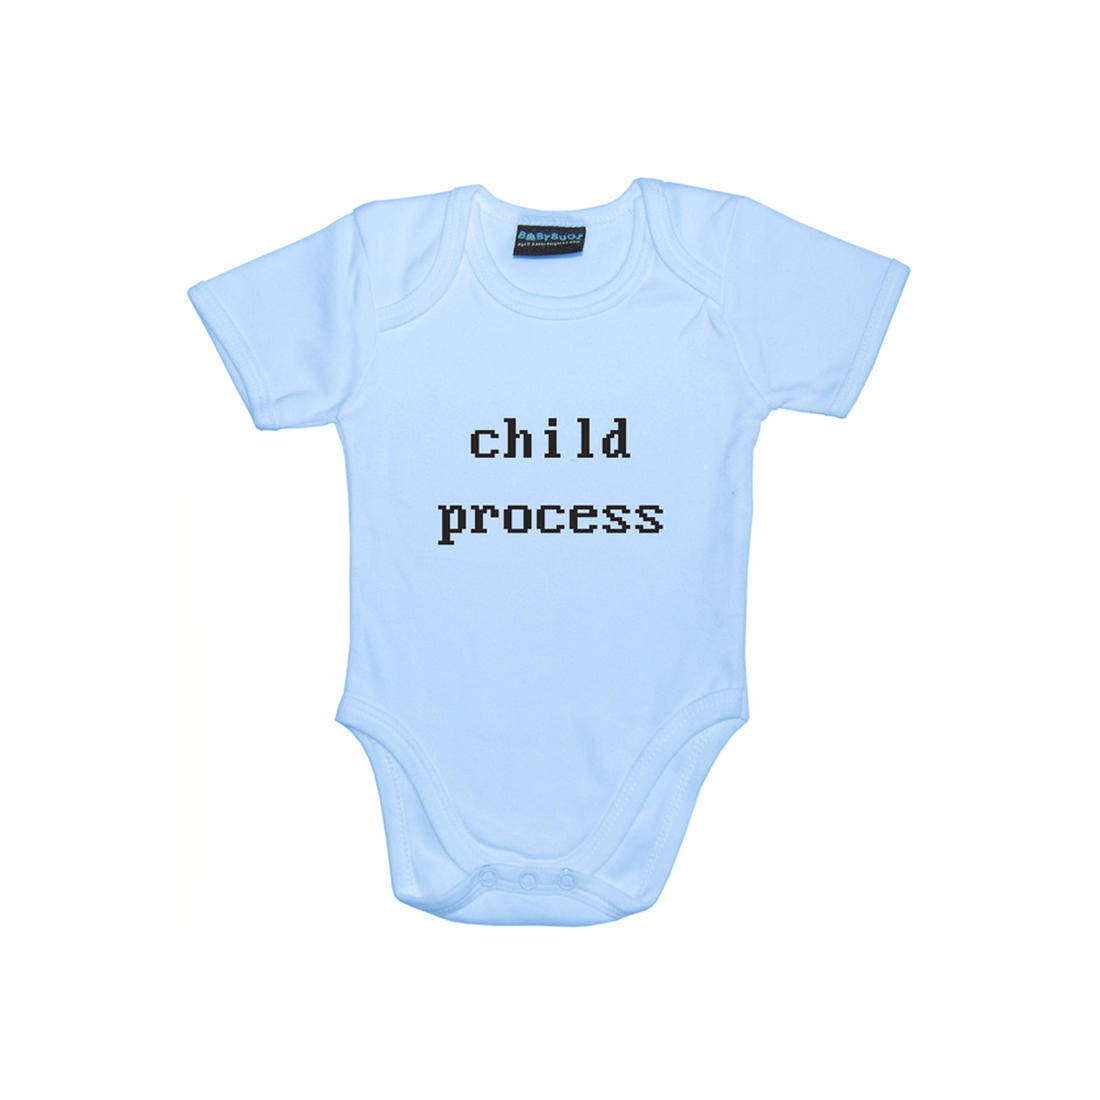 Child Process Baby Body